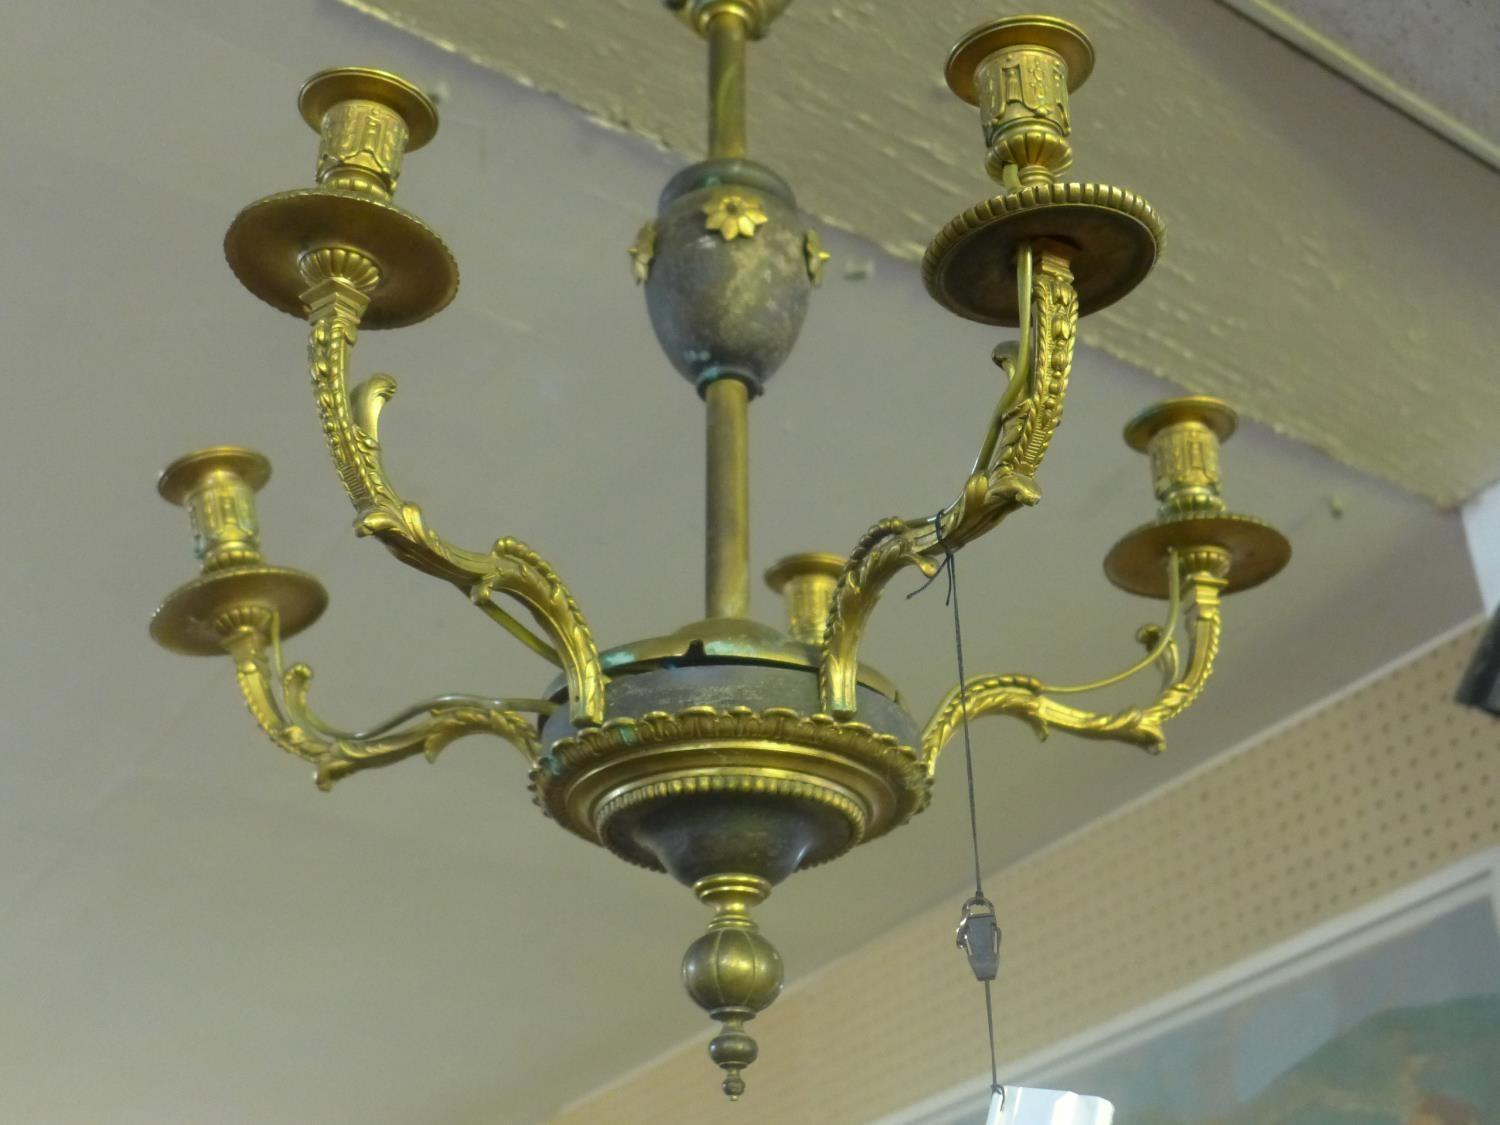 Lot 601 - A 19th century French gilt bronze chandelier